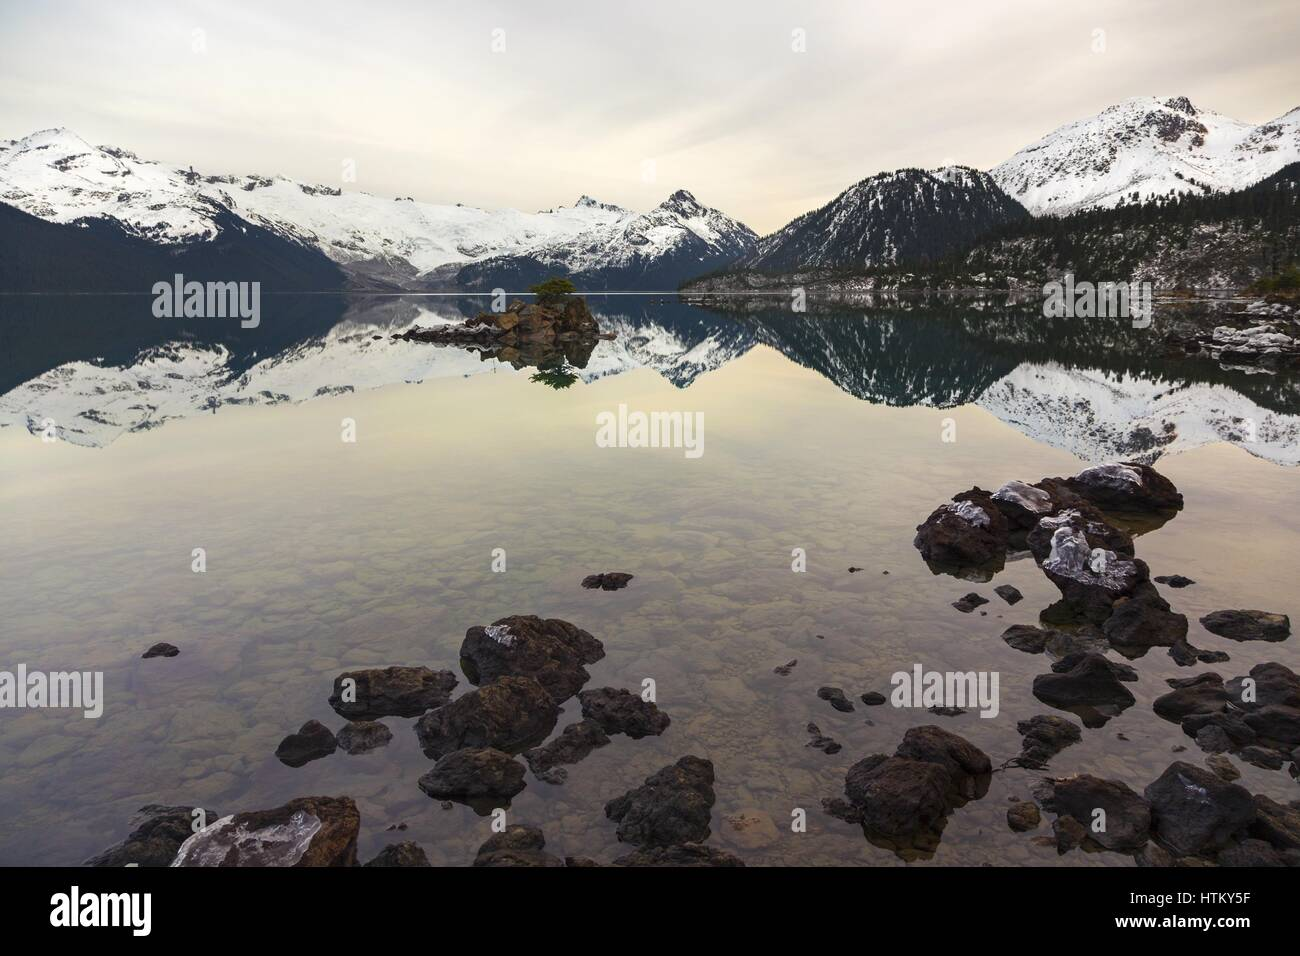 View across Garibaldi Lake in Coast Mountains of British Columbia, Canada from end of hiking trail at west end of Stock Photo